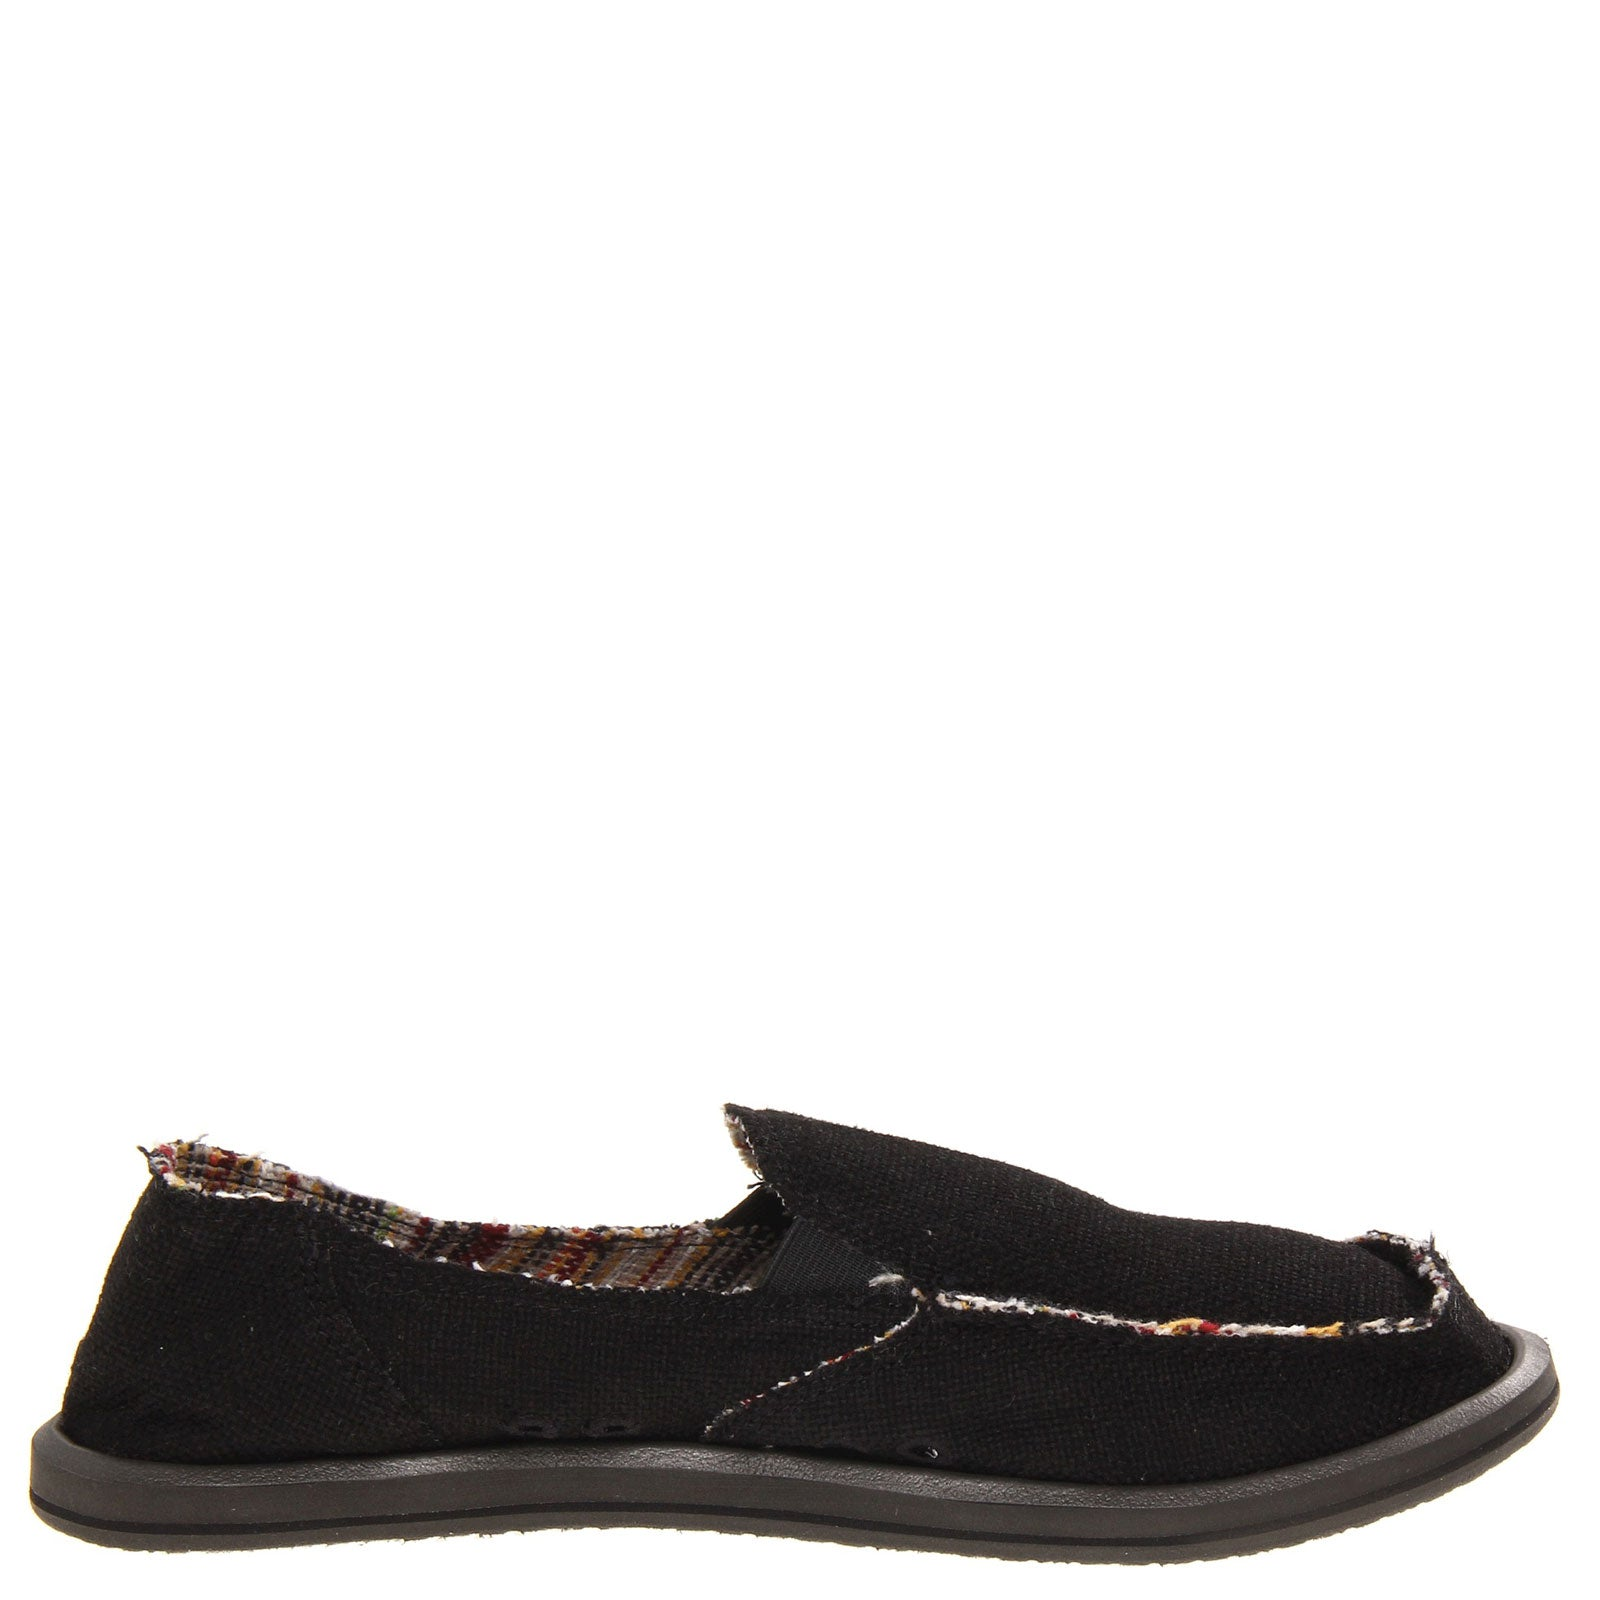 Sanuk Donna Hemp- Natural Fiona-20